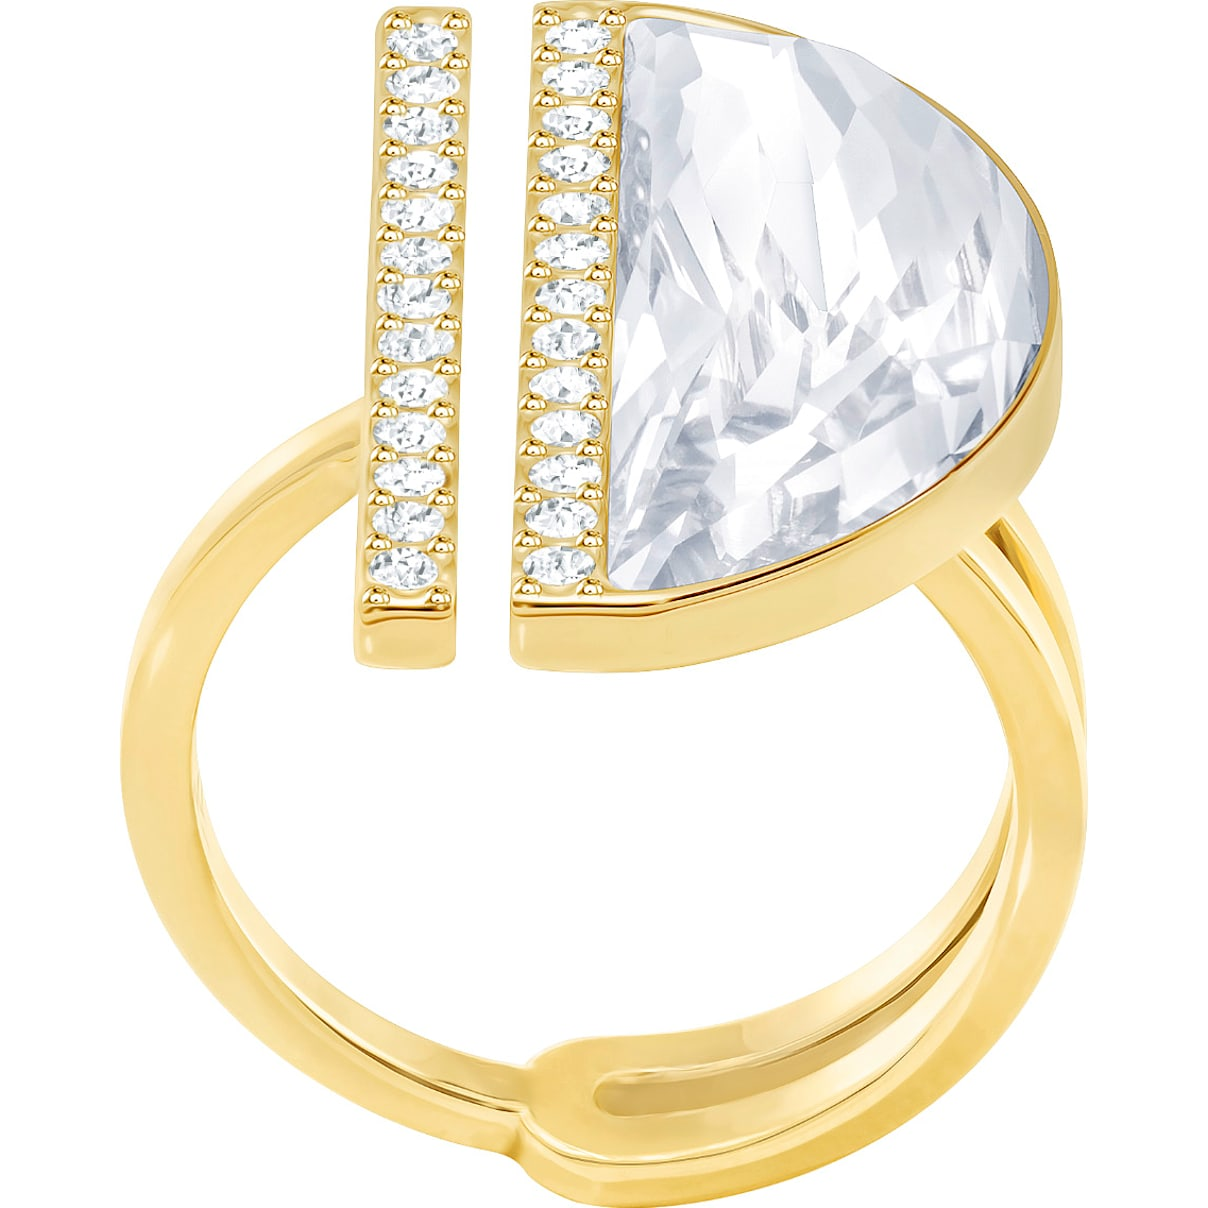 Swarovski Glow Ring, White, Gold-tone plated